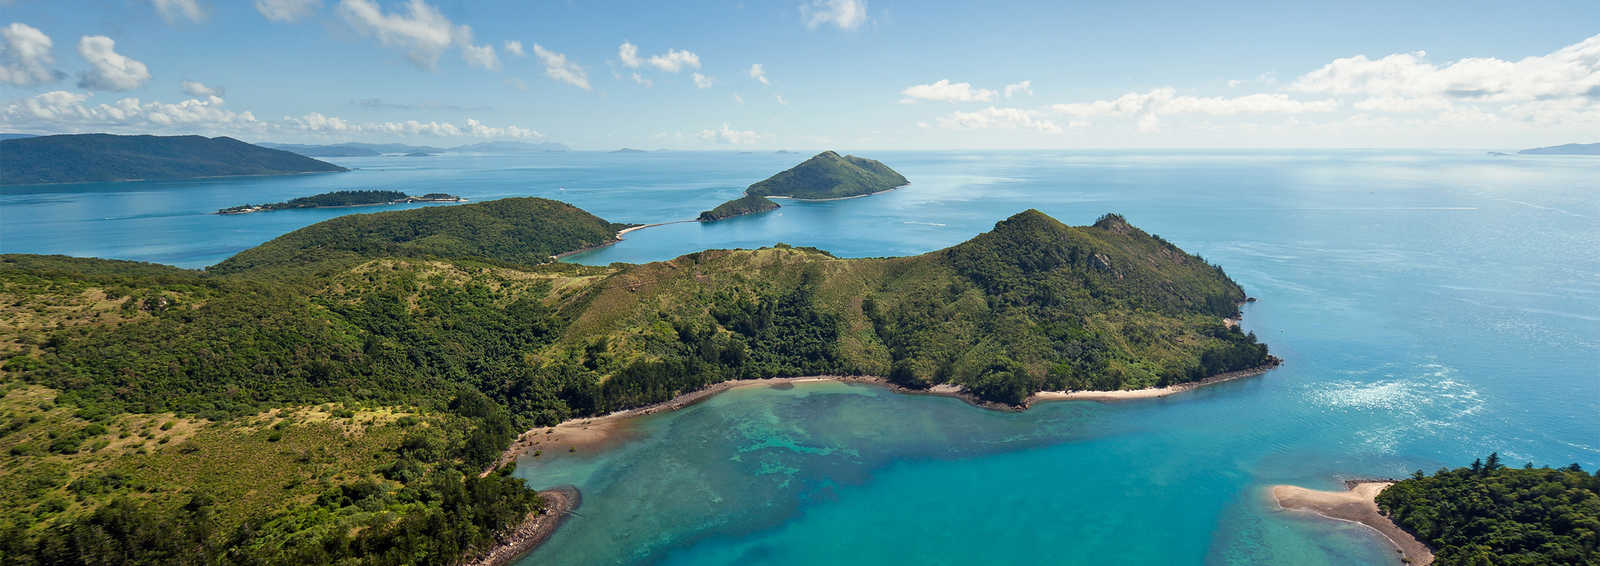 Dramatic Helicopter view of the Whitsunday Islands and surrounding seas in Queensland, Australia